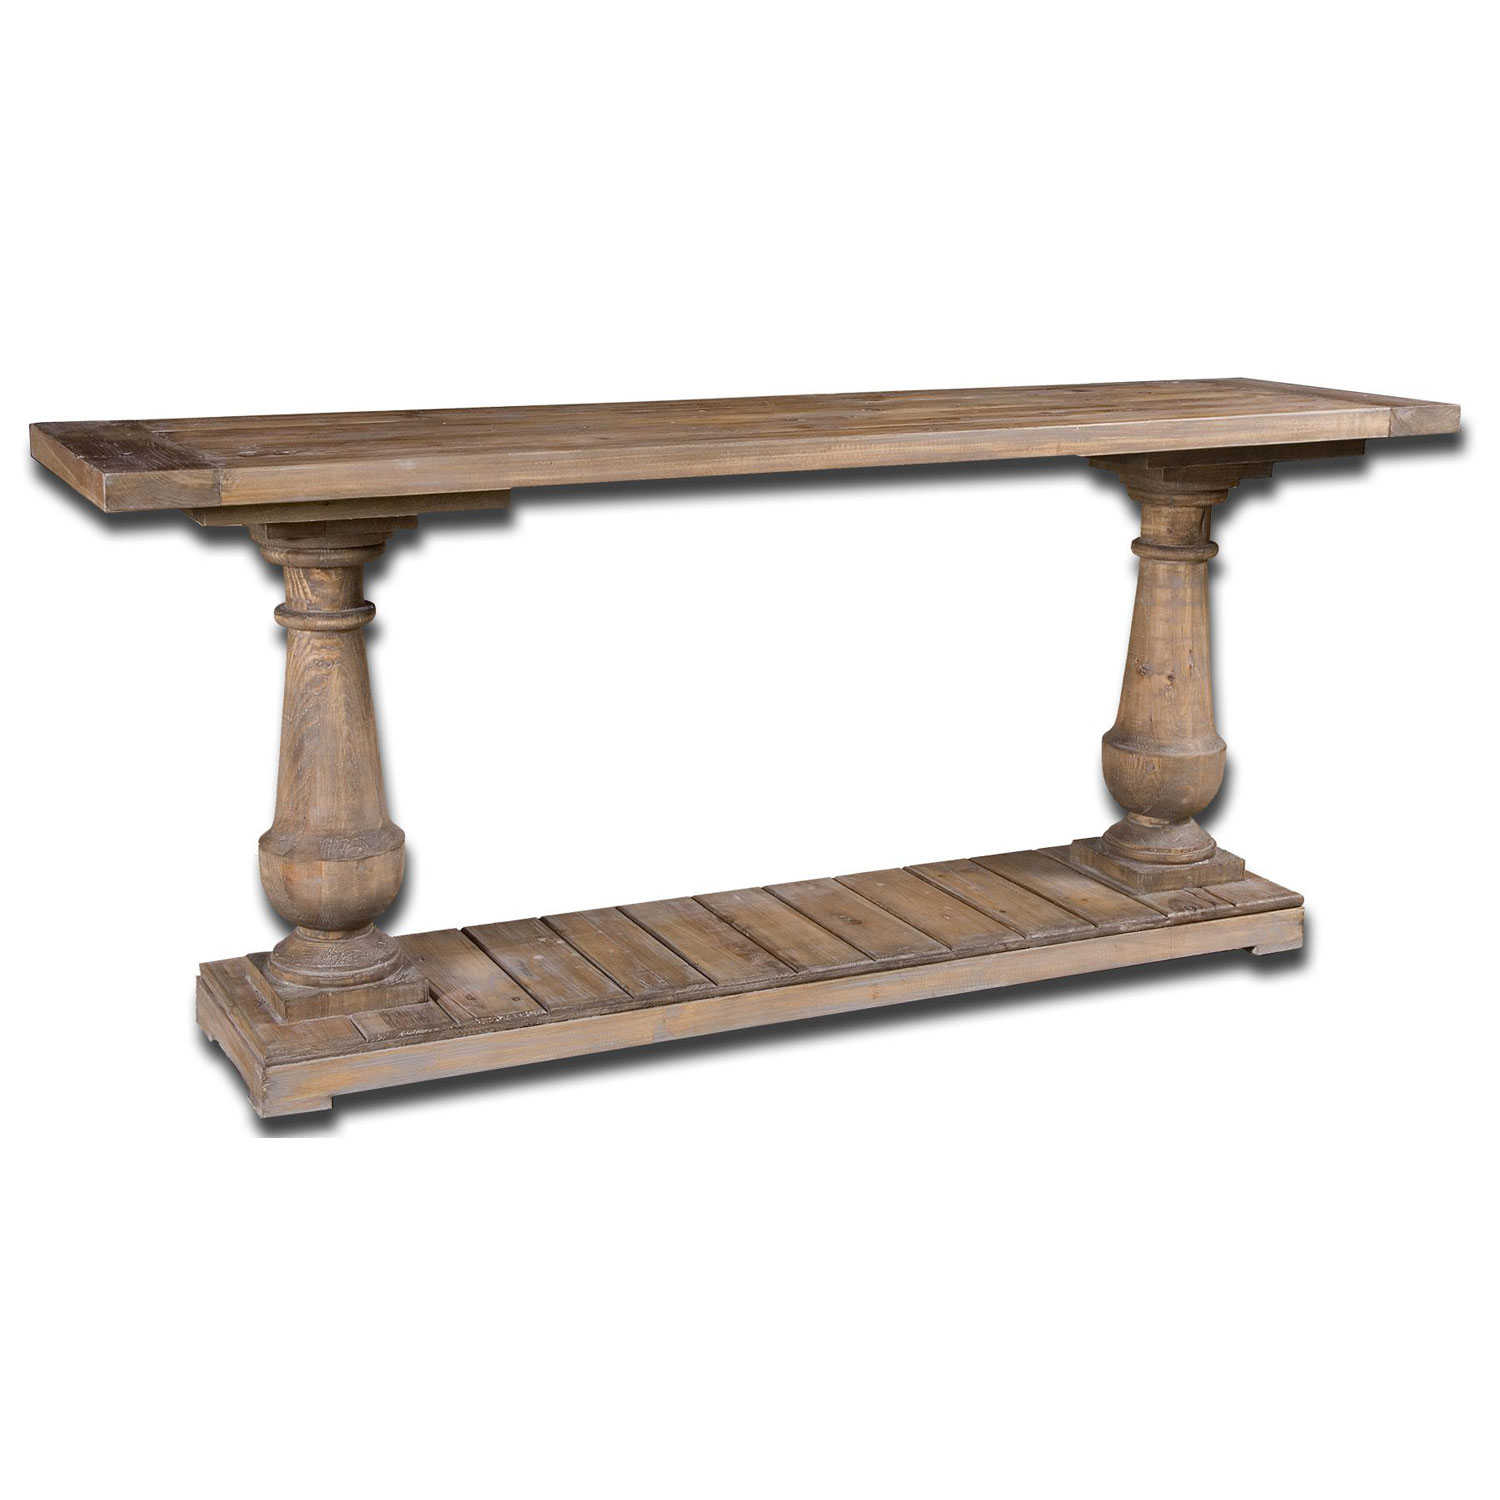 uttermost stratford fir wood console table bellacor drum accent hover zoom outdoor furniture sets brentwood cloth decoration foyer chest modern nightstand lamps small metal legs